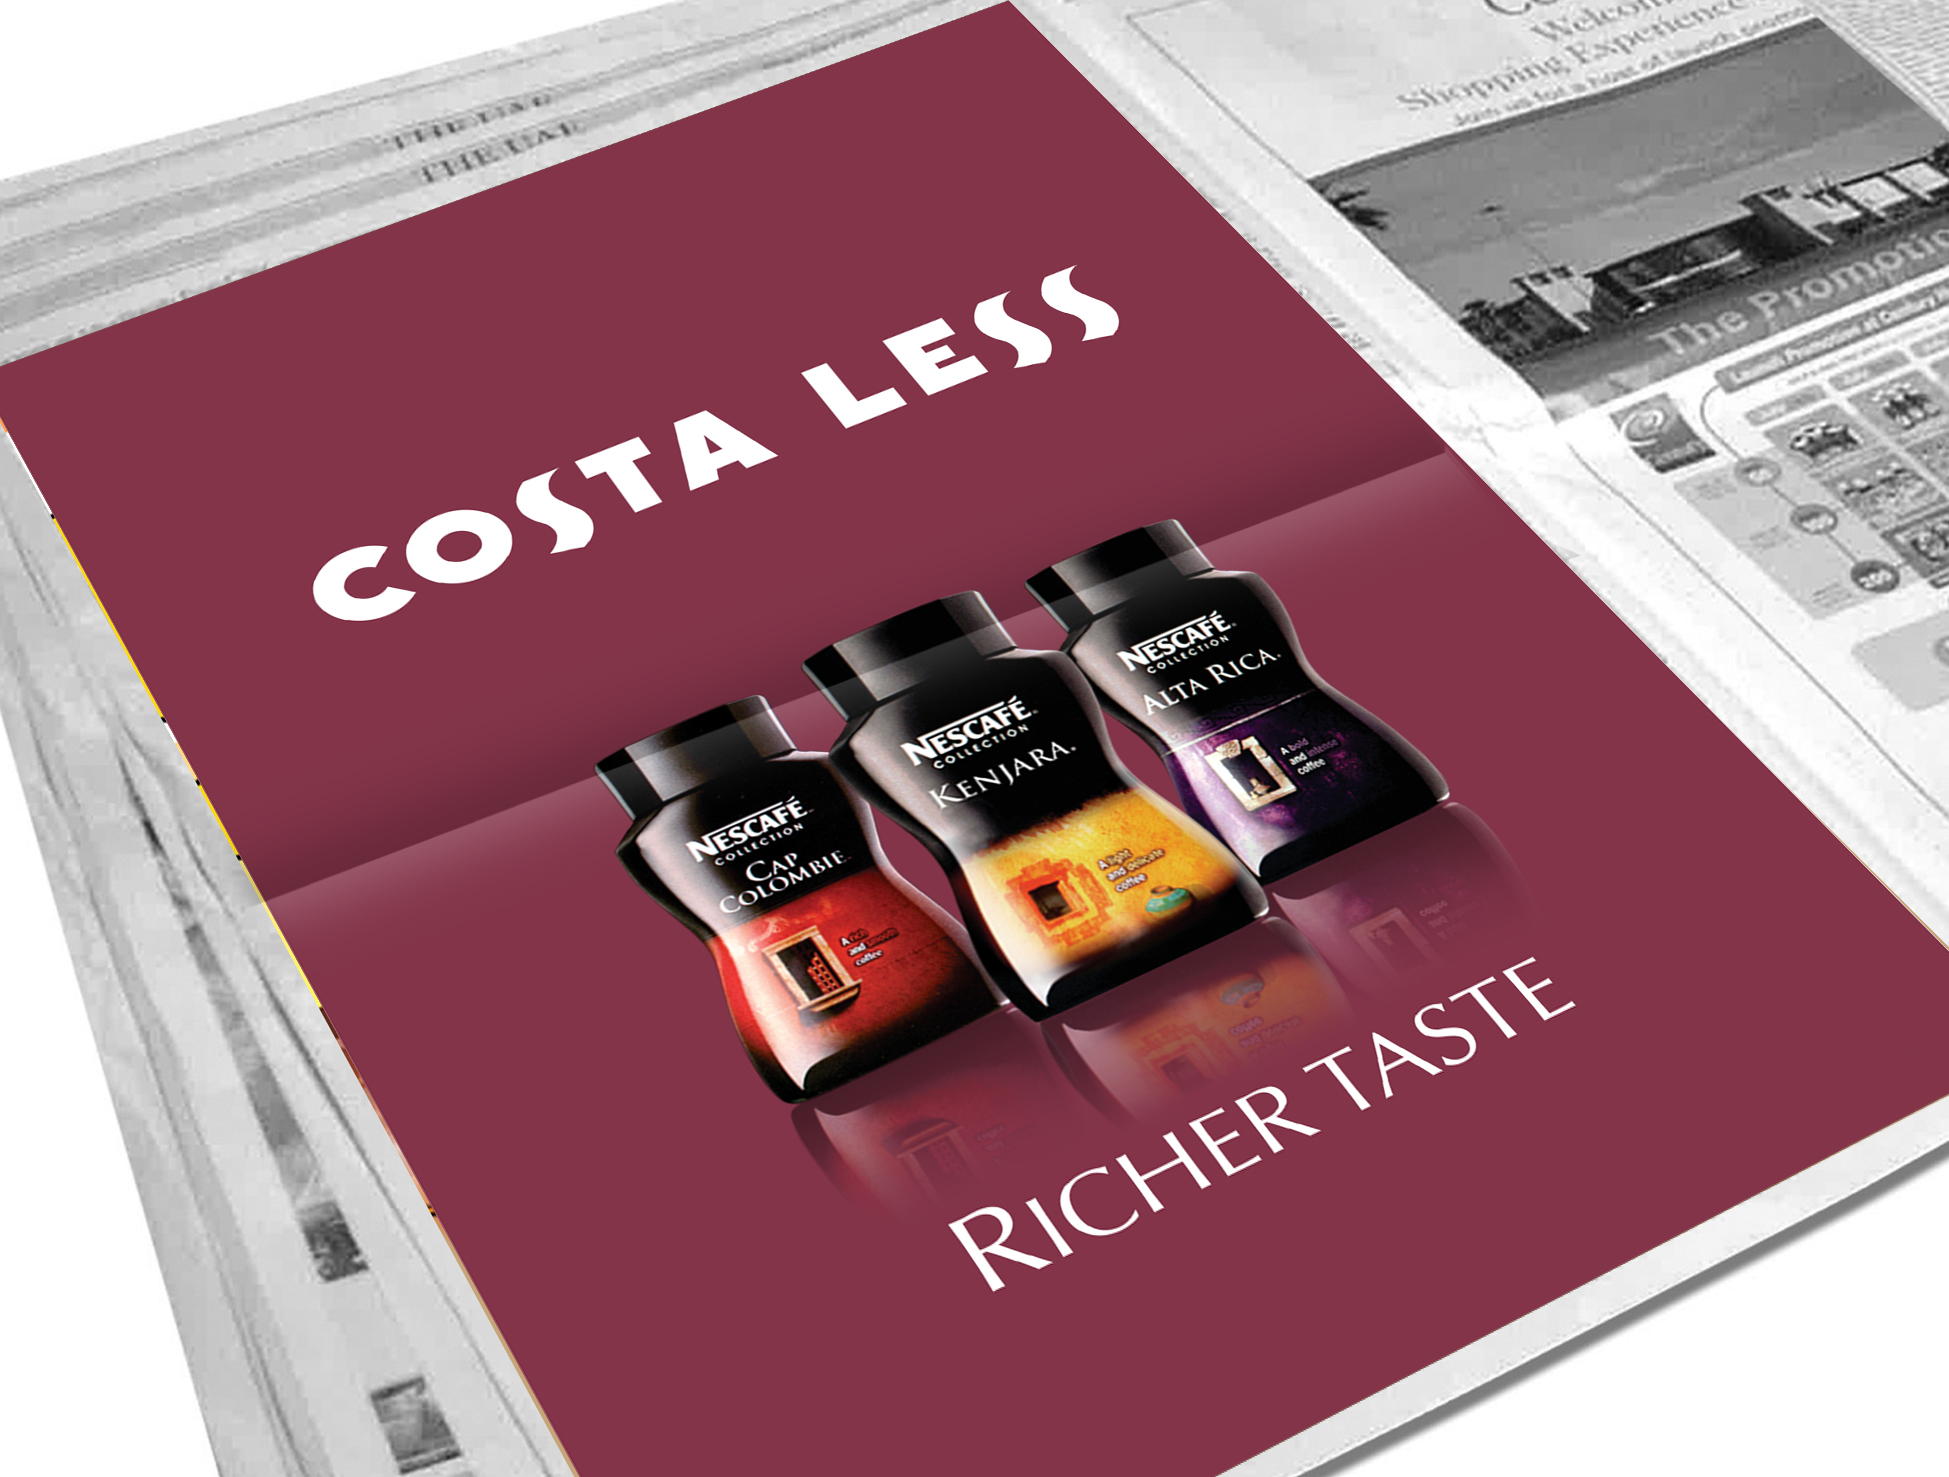 NESCAFE COLLECTION Costa less